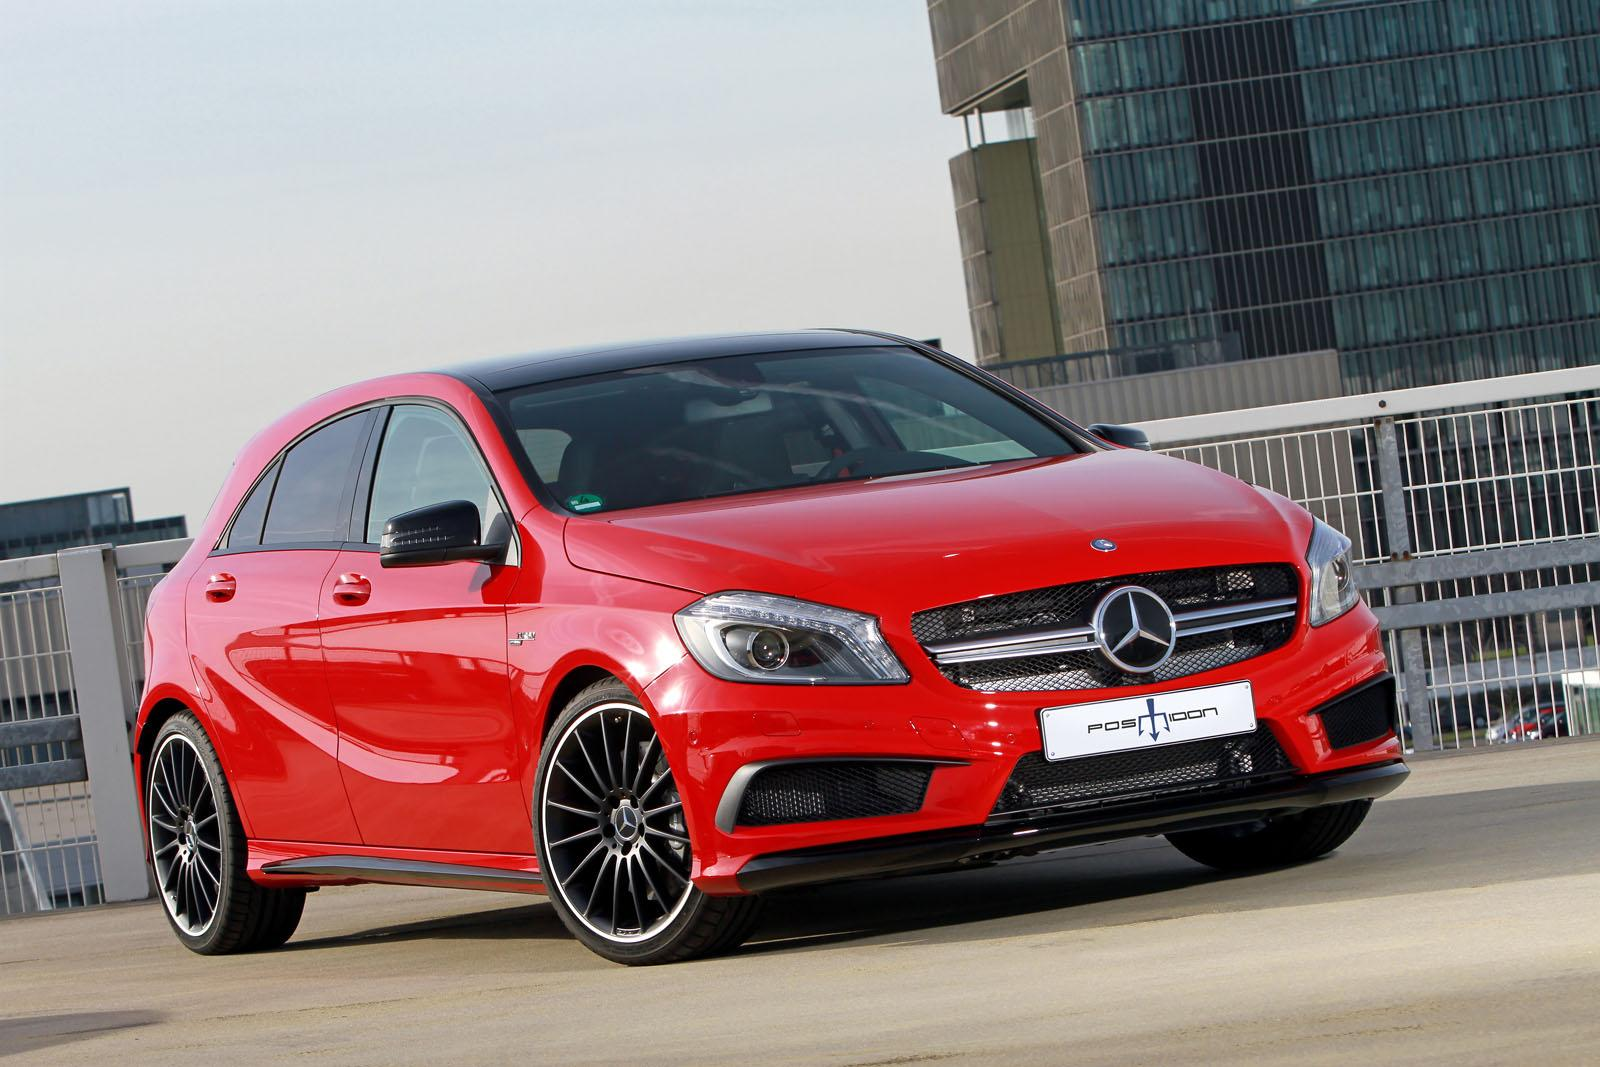 2014 mercedes benz a45 amg by posaidon front photo red for Mercedes benz a45 amg for sale